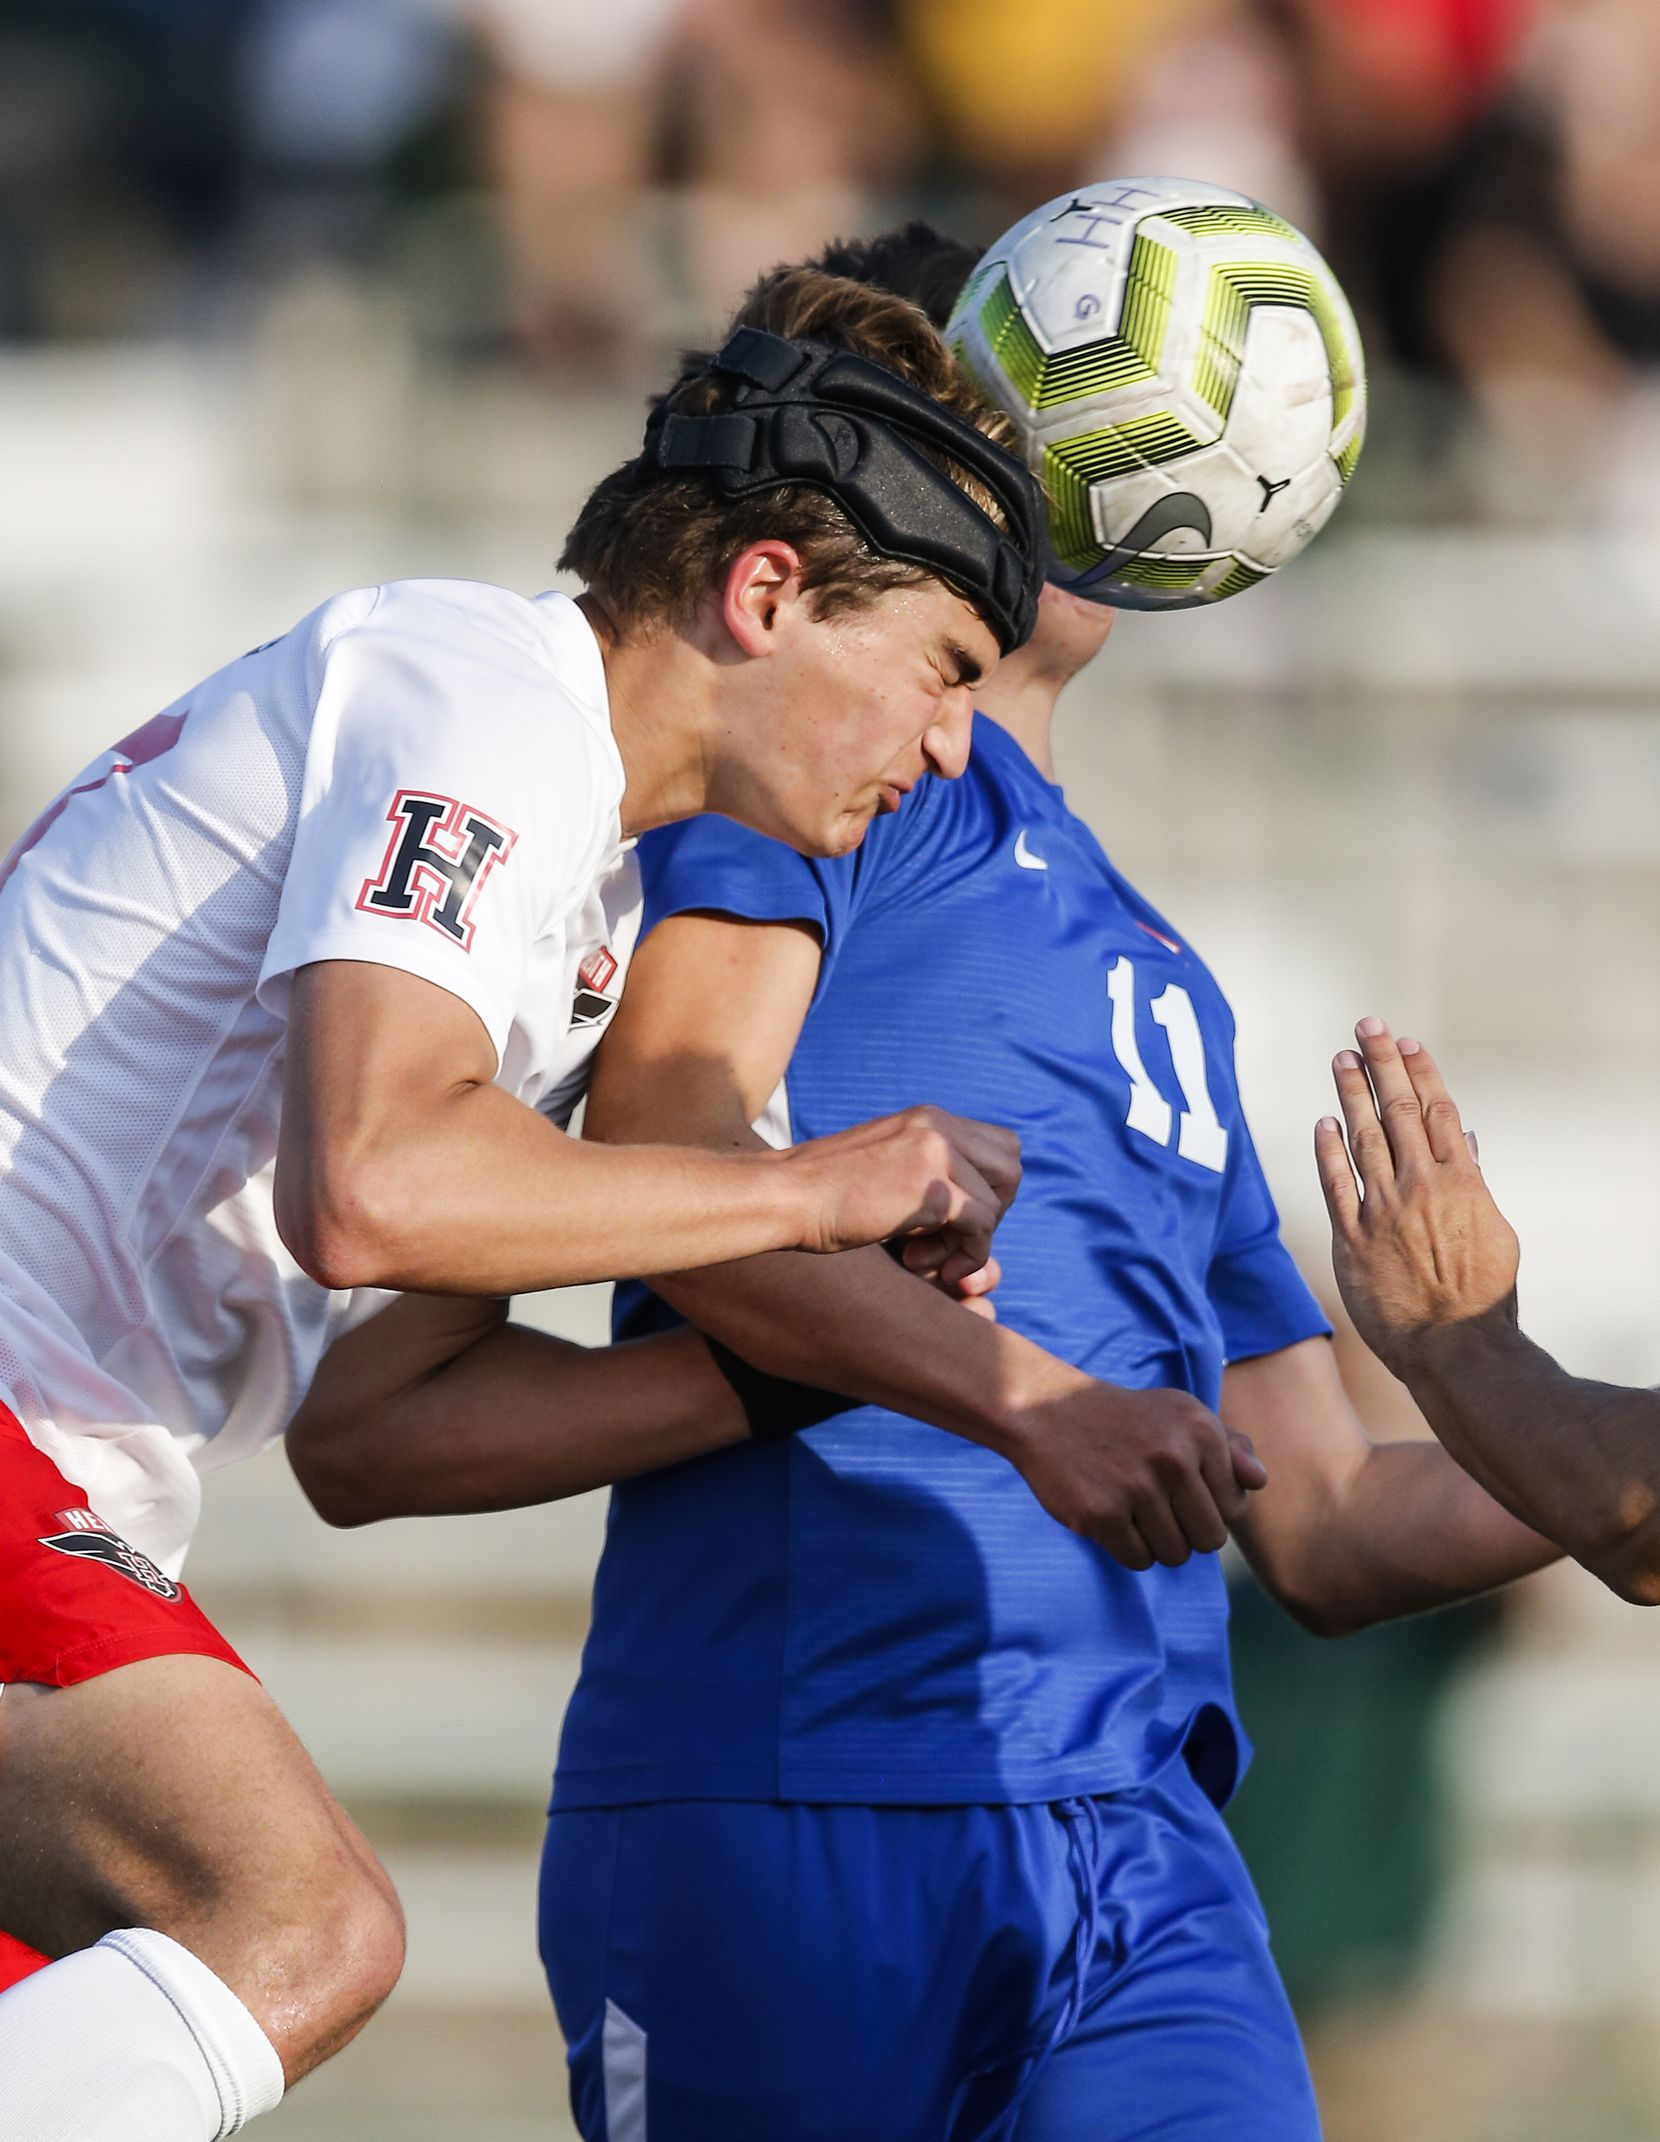 Rockwall-Heath freshman defender Fletcher Fierro, left, heads the ball away from Allen senior midfielder Bryan Vallejo (11) during the first half of a boys soccer Class 6A state semifinal at Mesquite Memorial Stadium in Mesquite, Tuesday, April 13, 2021. (Brandon Wade/Special Contributor)